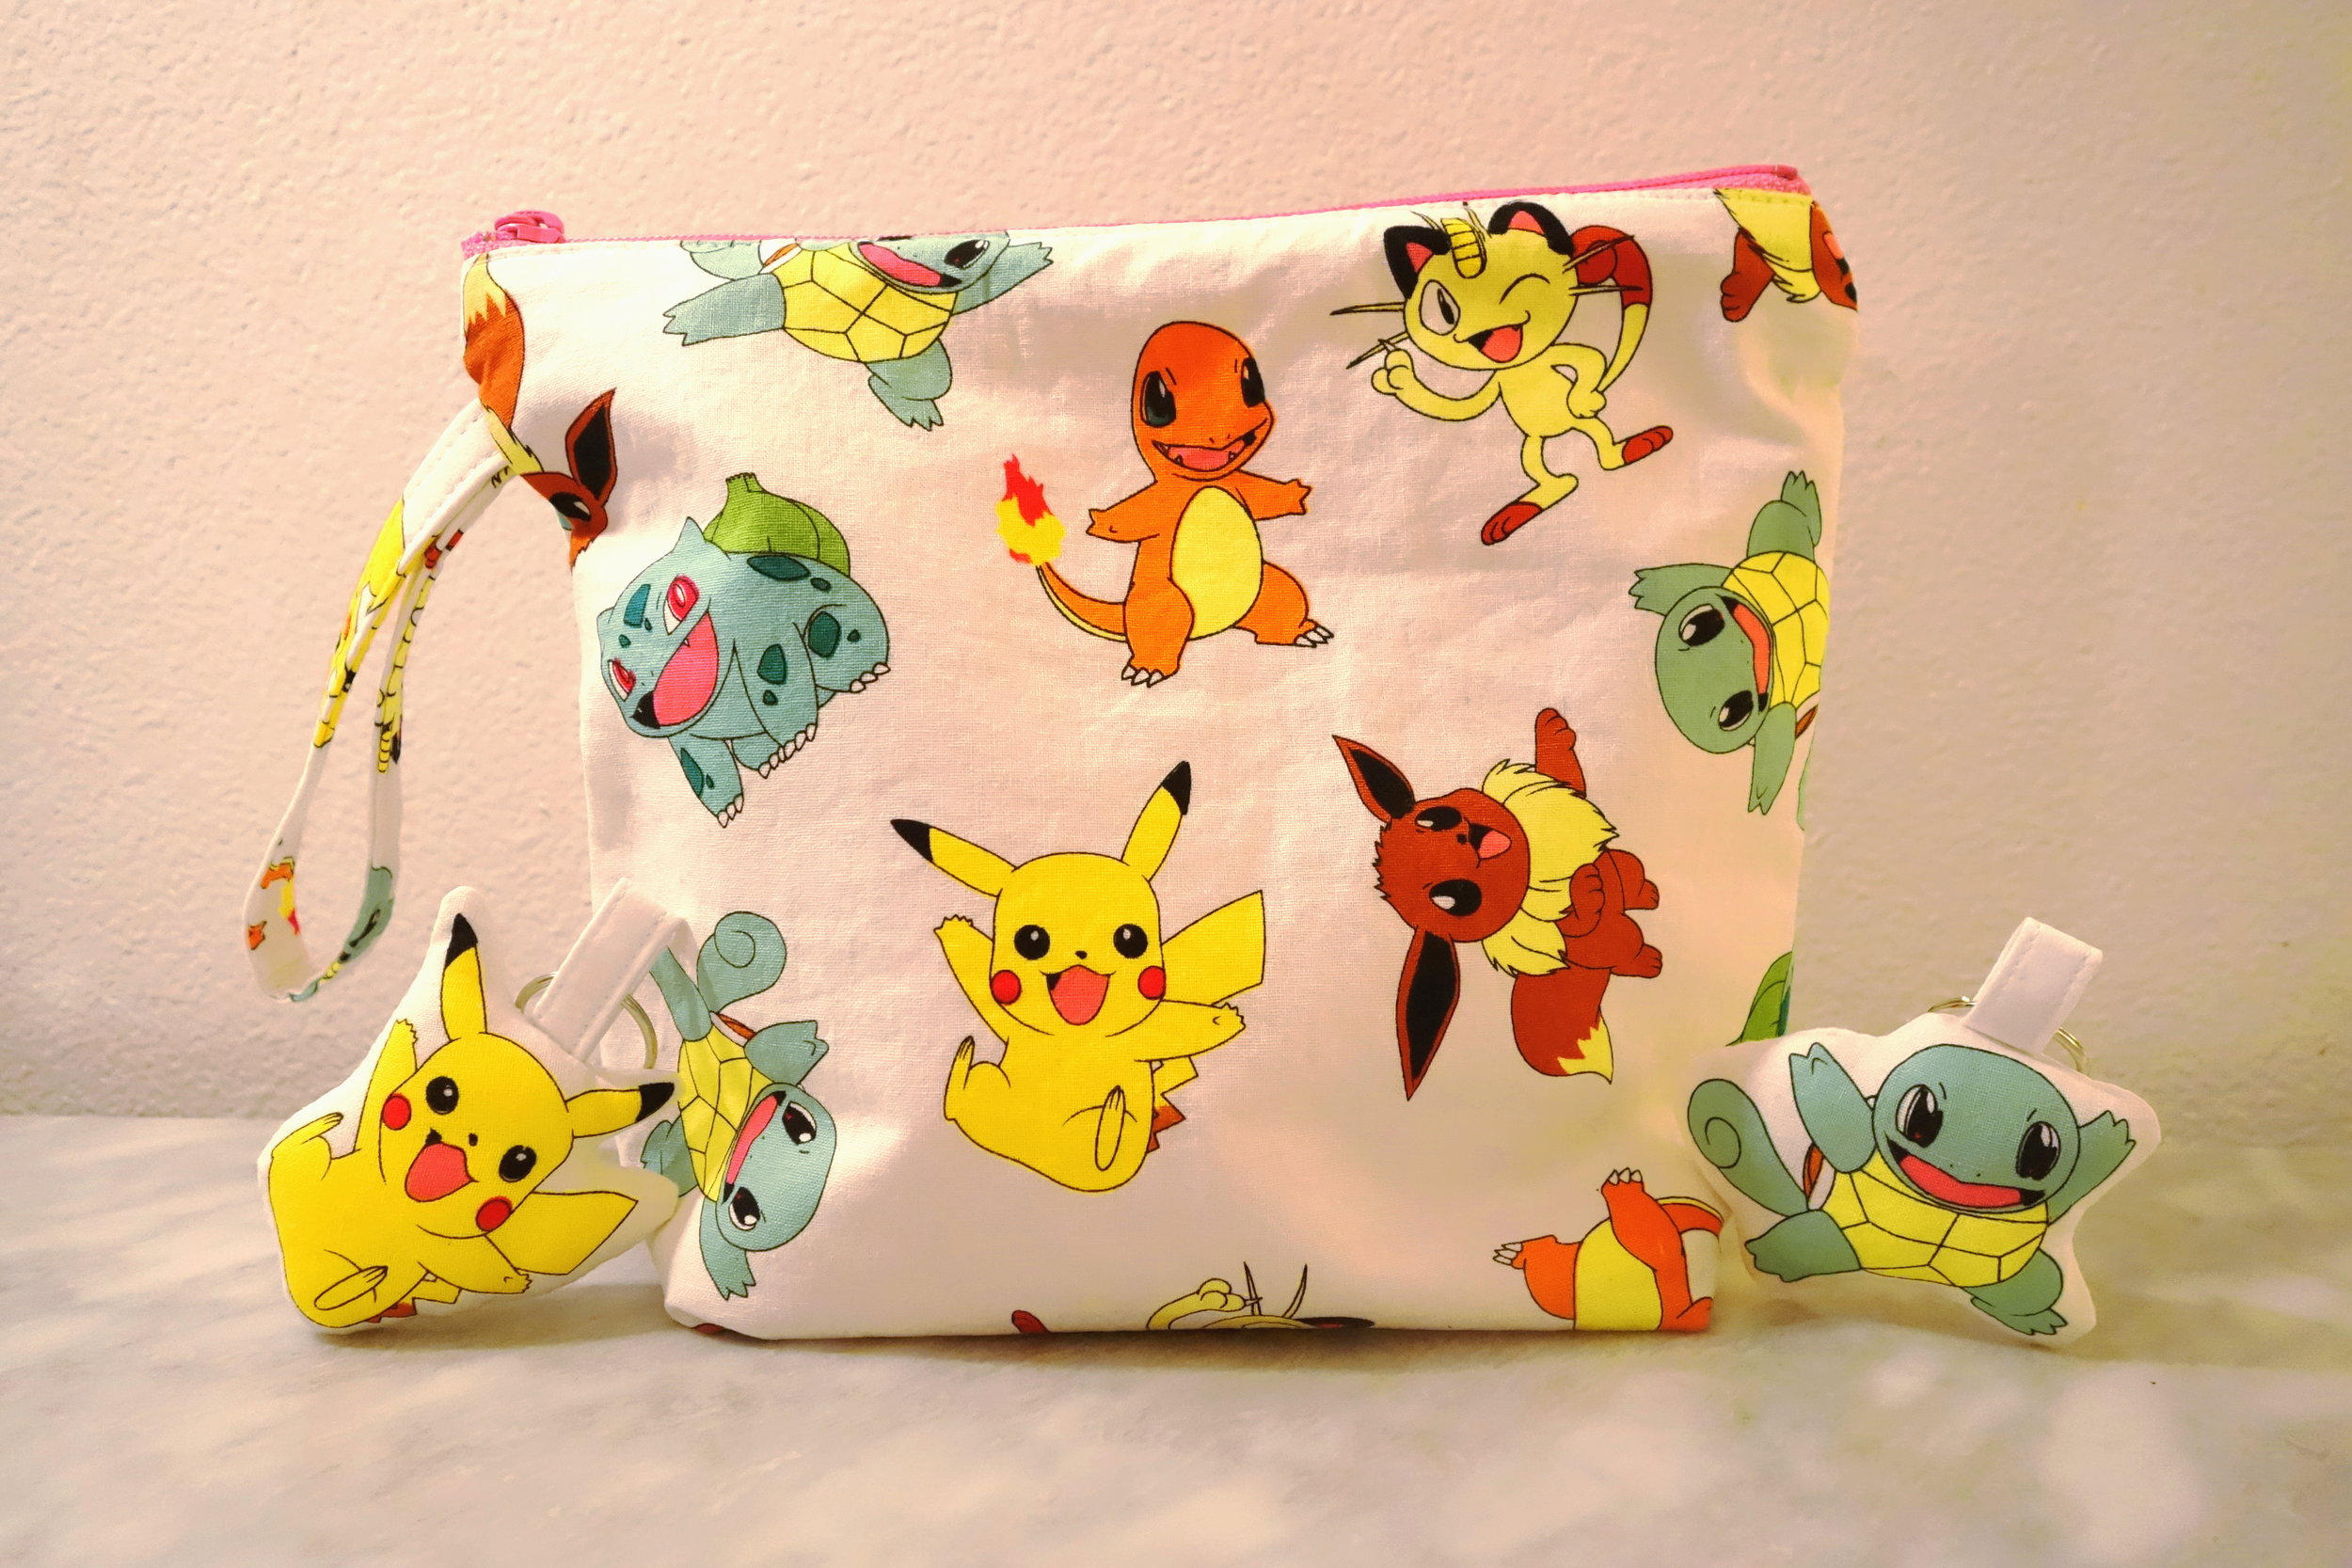 Pokemon Bag (Center), Pikachu Pillow Keychain (Left) & Squirtle Pillow Keychain (Right)